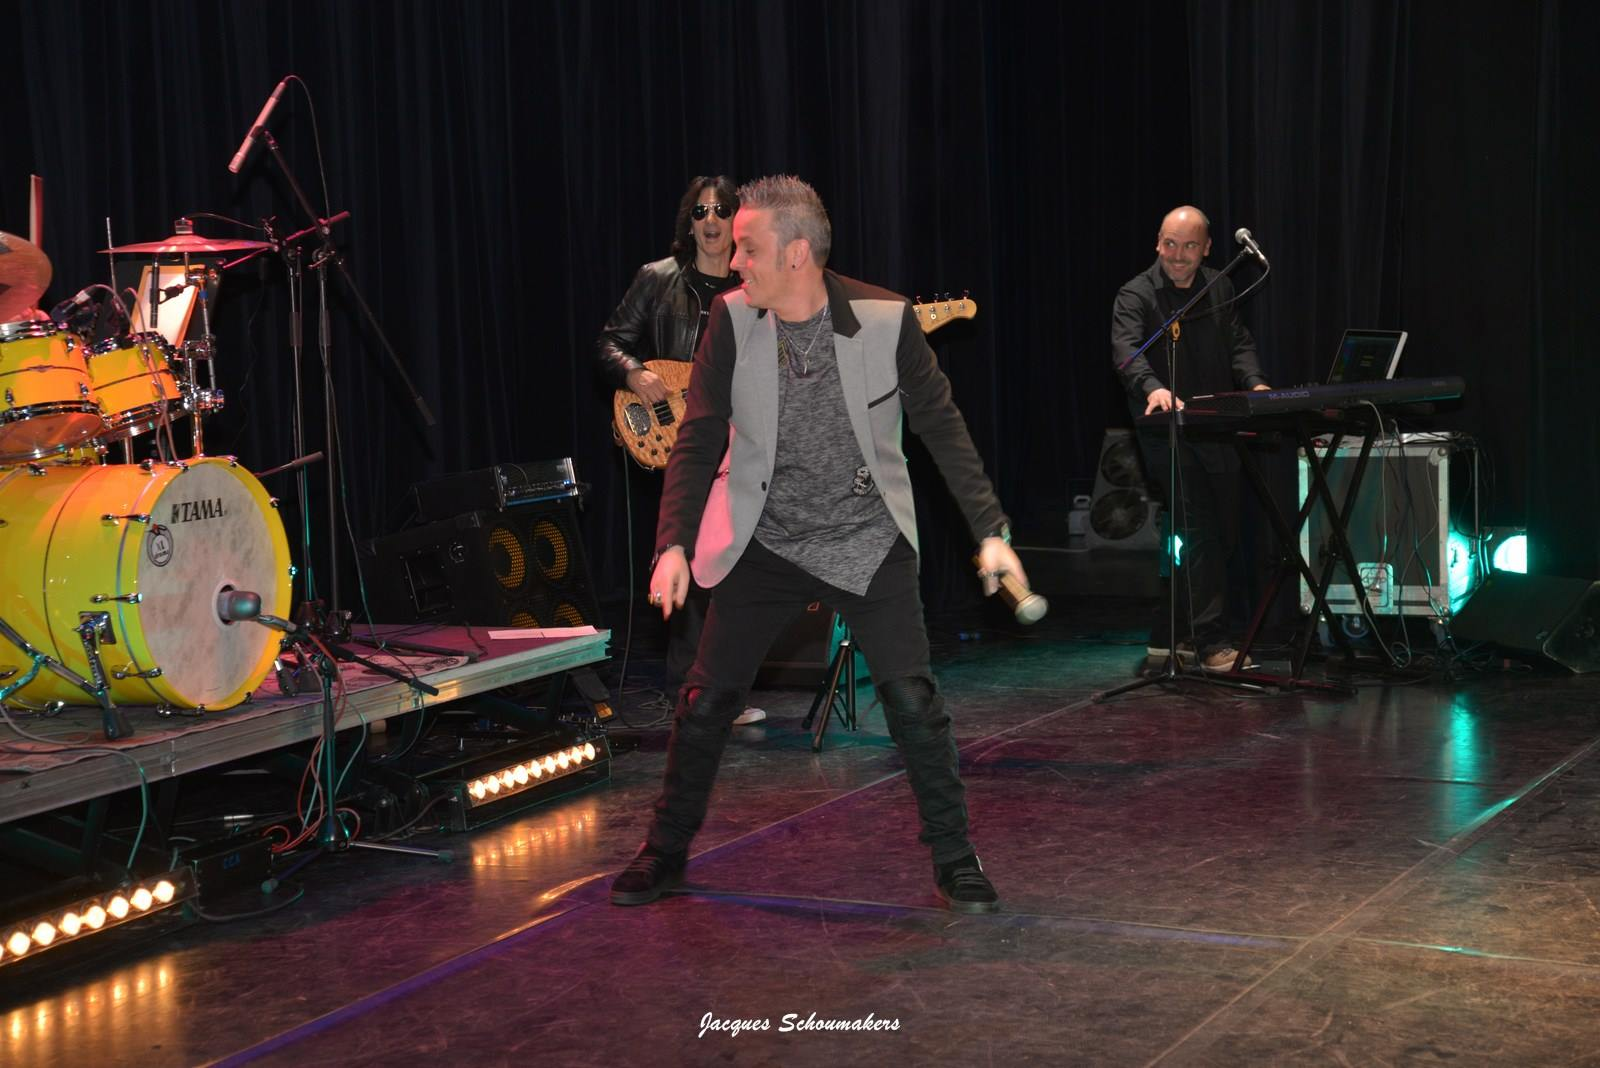 Sebastian-for-elvis-centre-culturel-andenne-jacques-schoumakers-facebook-13